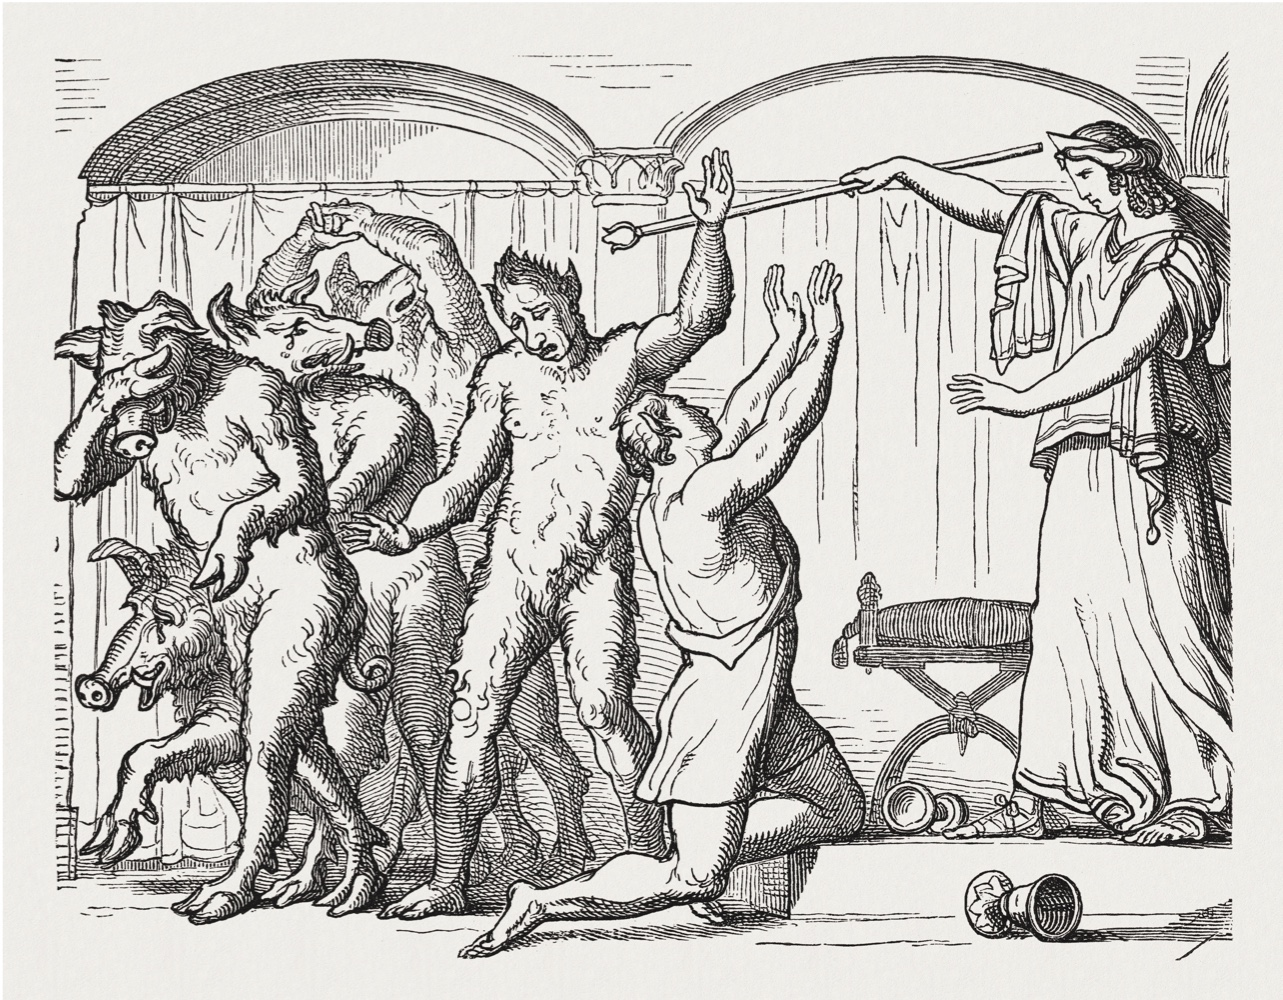 "Circe transforms Odysseus' companions into pigs. Scene from the Greek Mythology. Wood engraving from the book ""Die schönsten Griechischen Sagen aus dem Altertum (The best Greek legends of antiquity)"" published by F. Carl and Hermann Mehl. Printed by Otto Spamer, Leipzig in 1880"